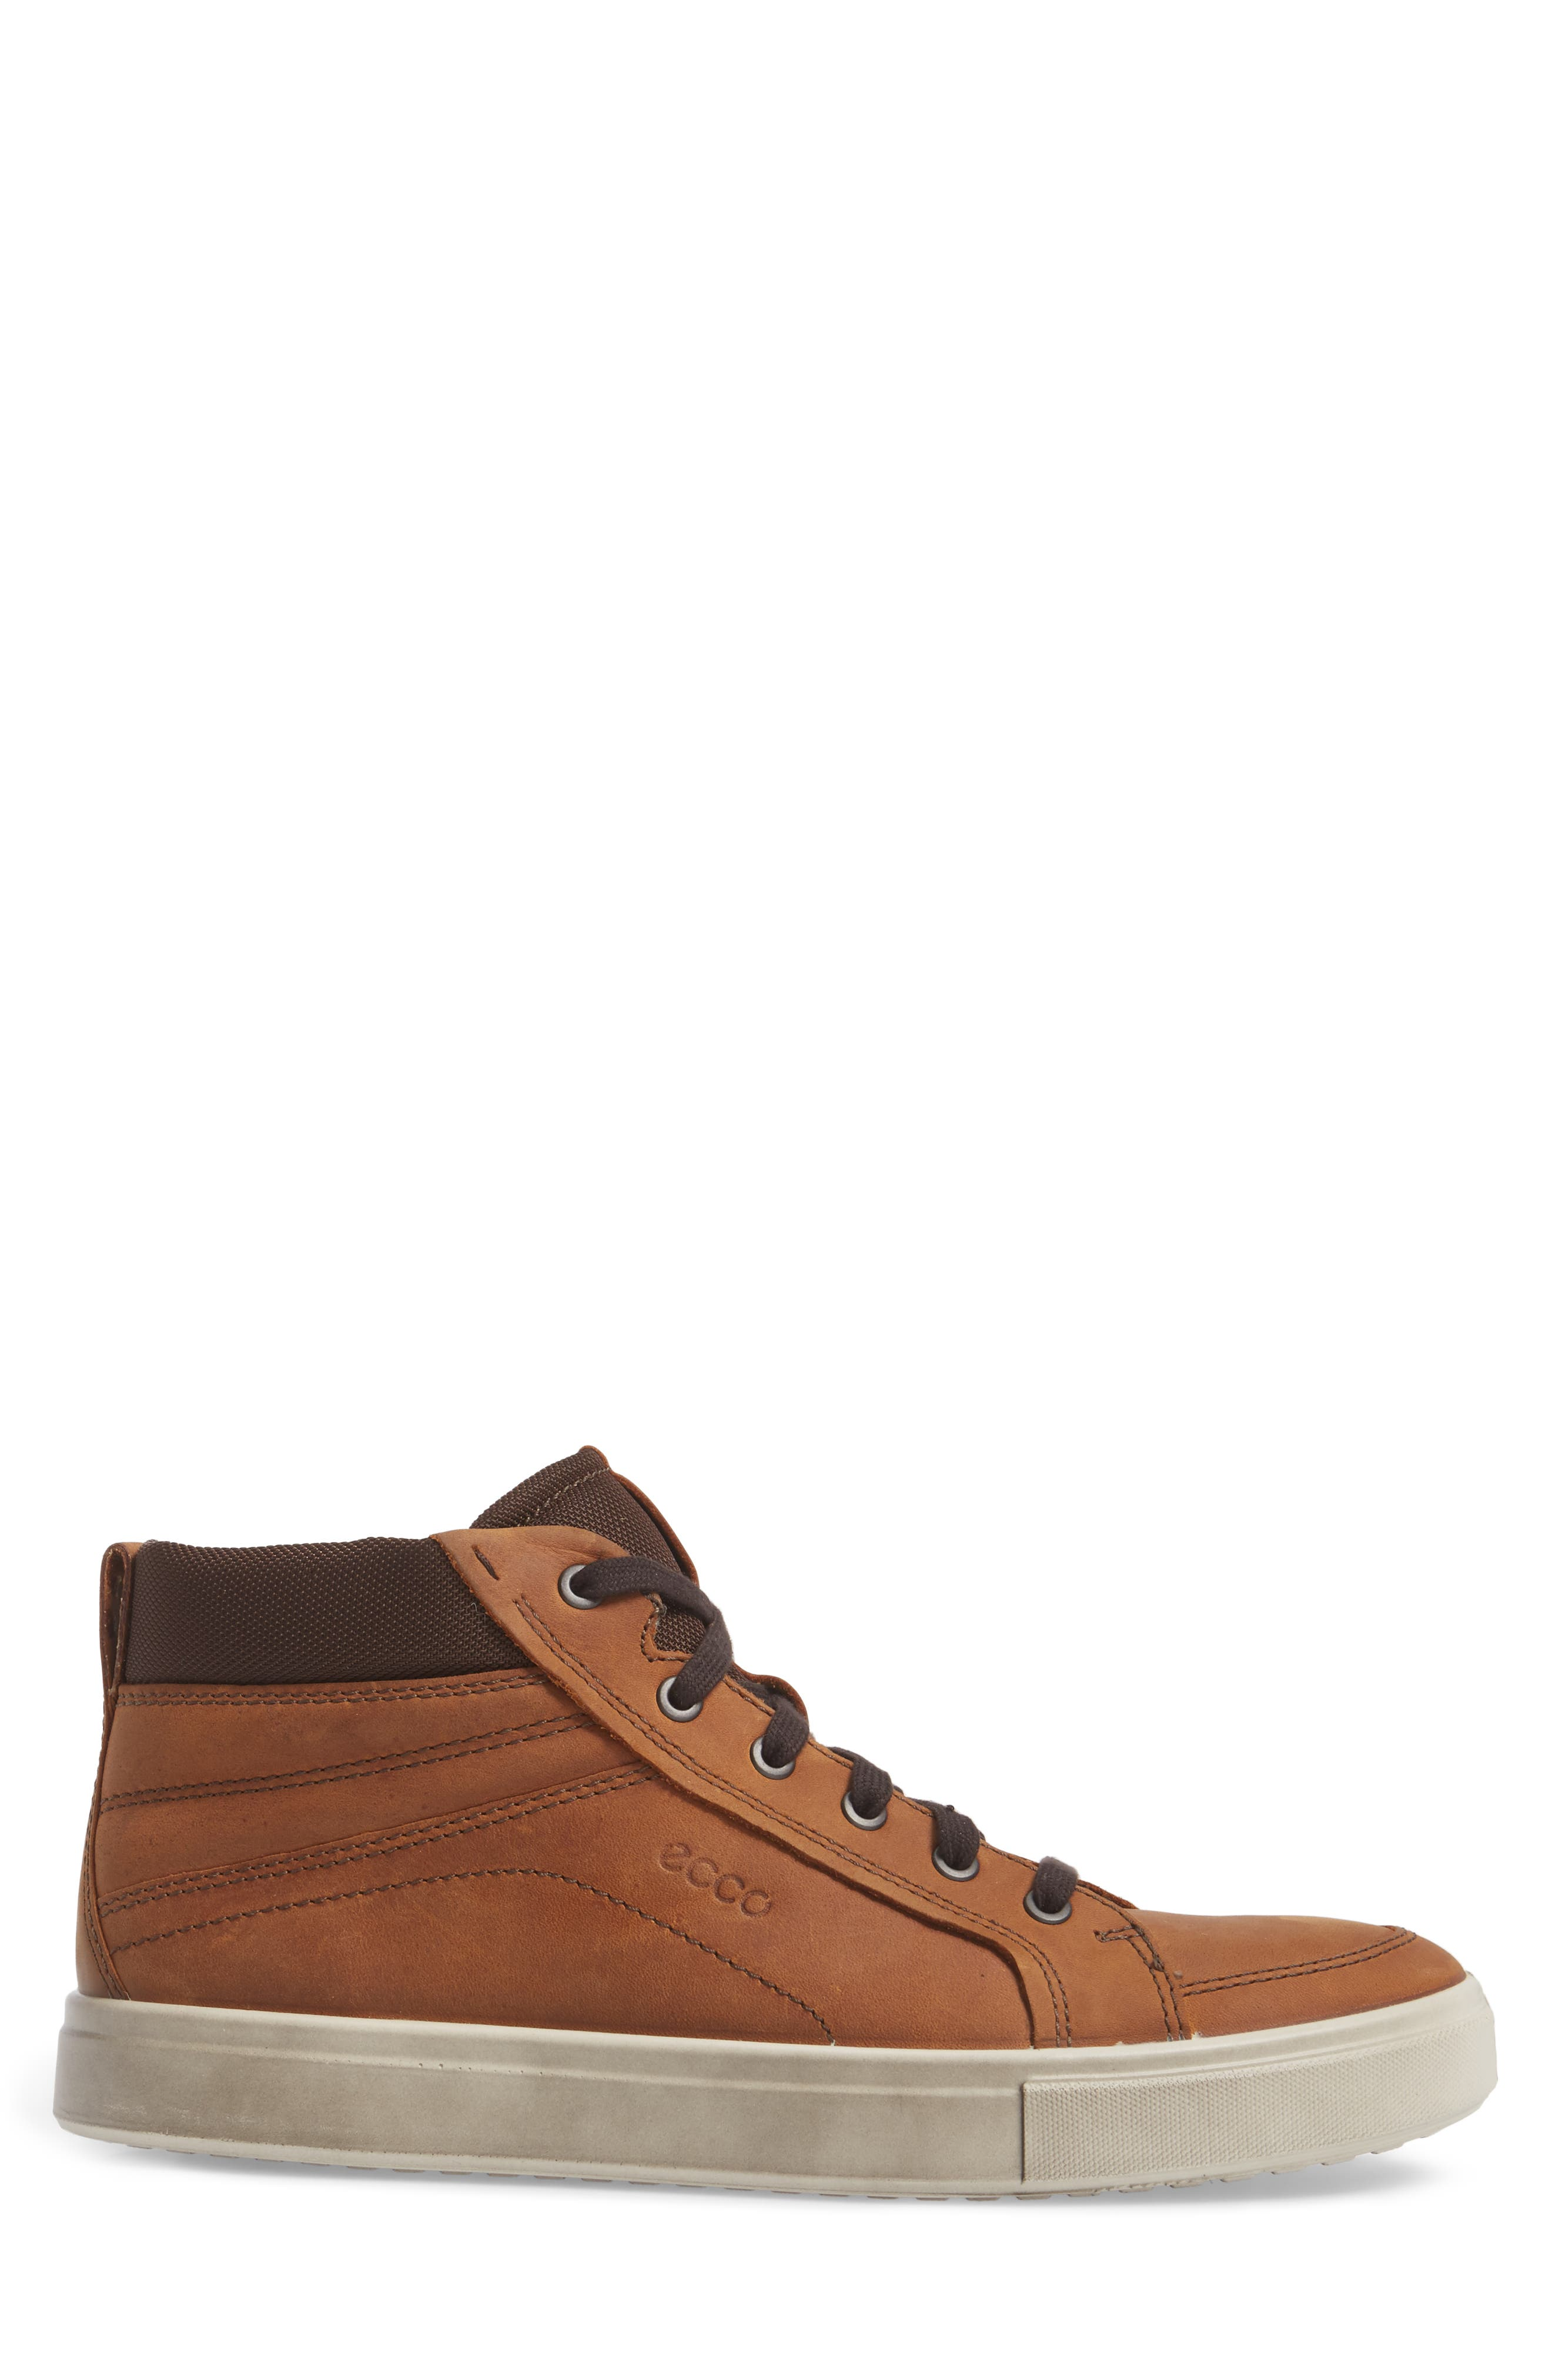 Kyle Sneaker,                             Alternate thumbnail 3, color,                             Amber Leather